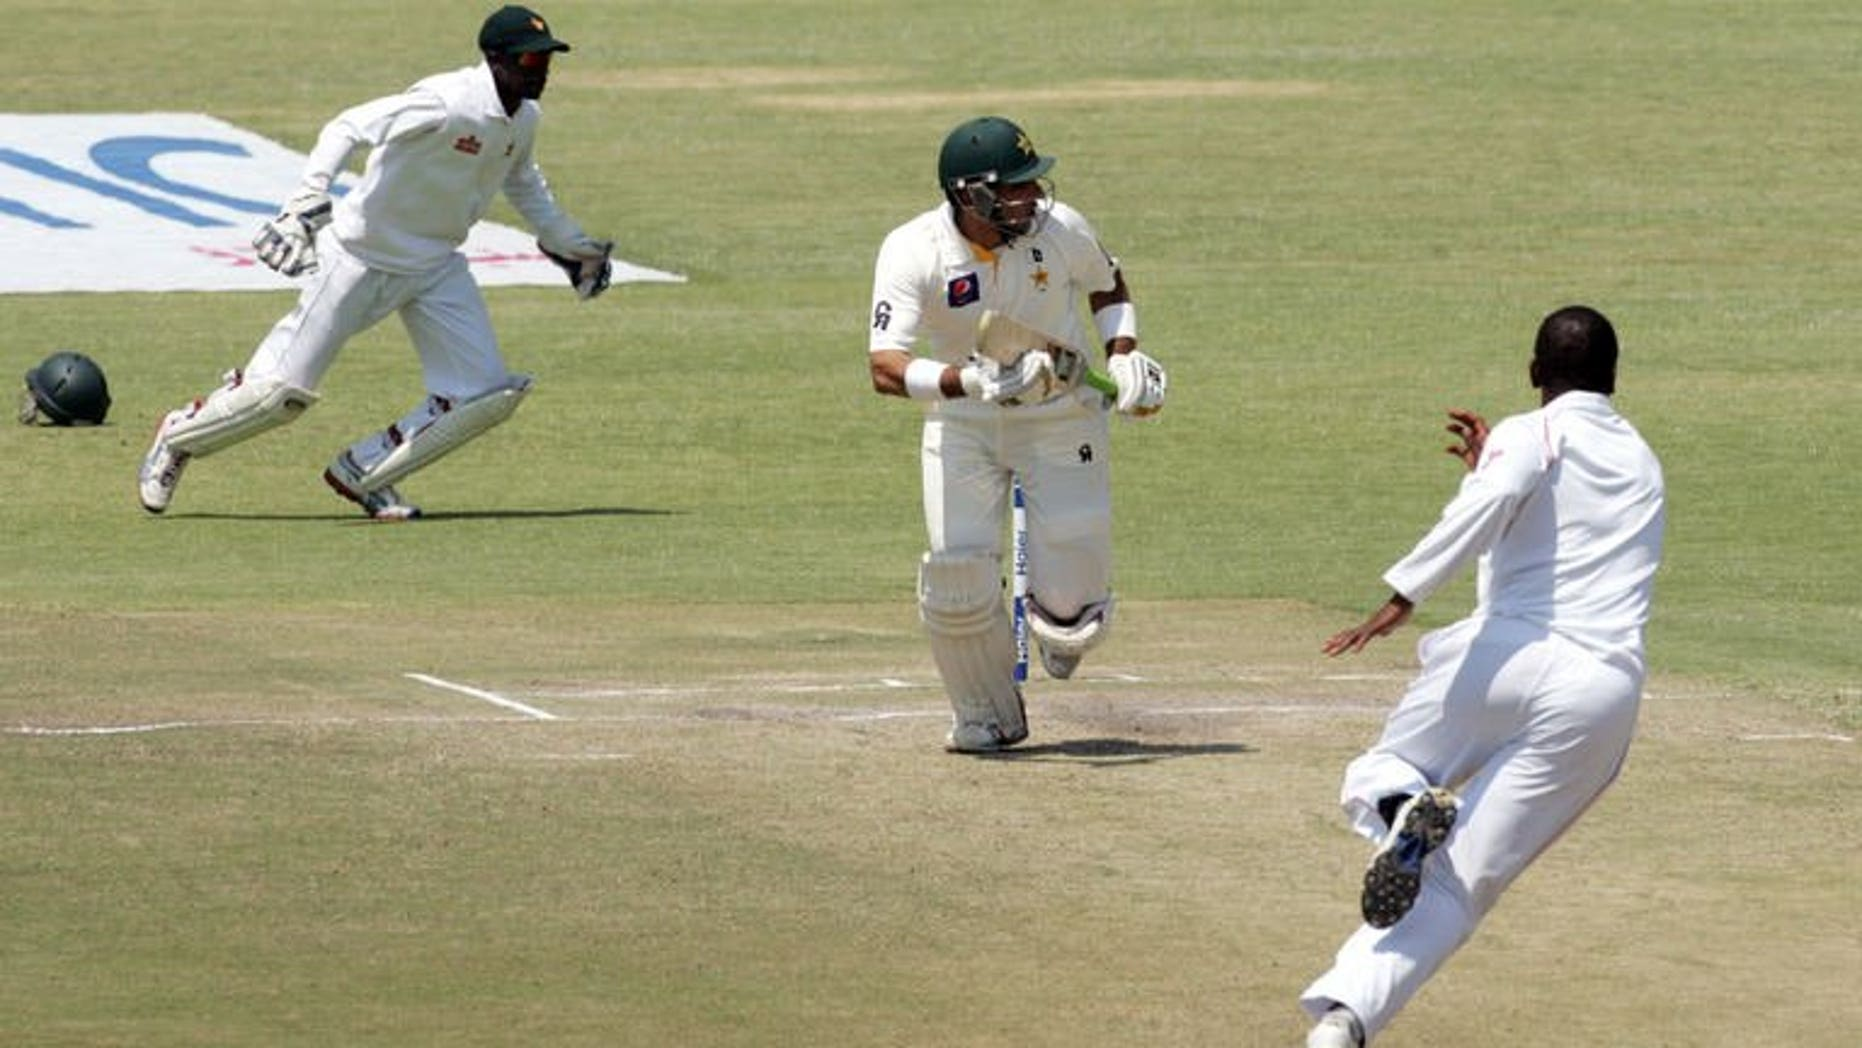 Pakistan's captain Misbah-Ul-Haq (centre) runs during the second Test match against Zimbabwe in Harare on September 14, 2013. Misbah hit his third half-century of the series, but his team lost three wickets on a tense fifth day of the second Test.